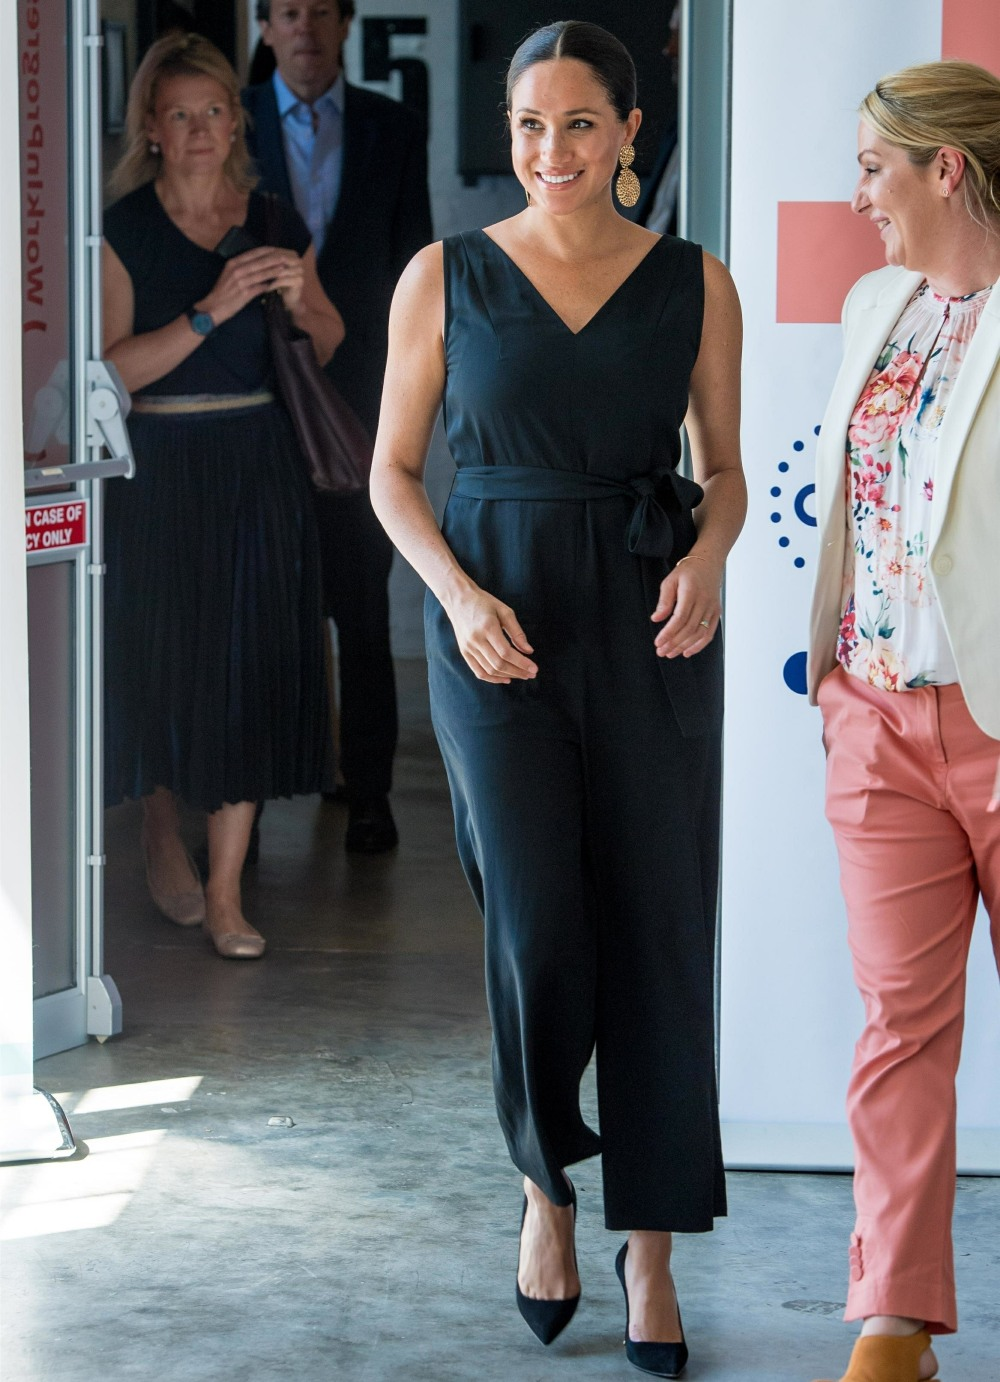 Meghan The Duchess of Sussex visits the Woodstock Exchange